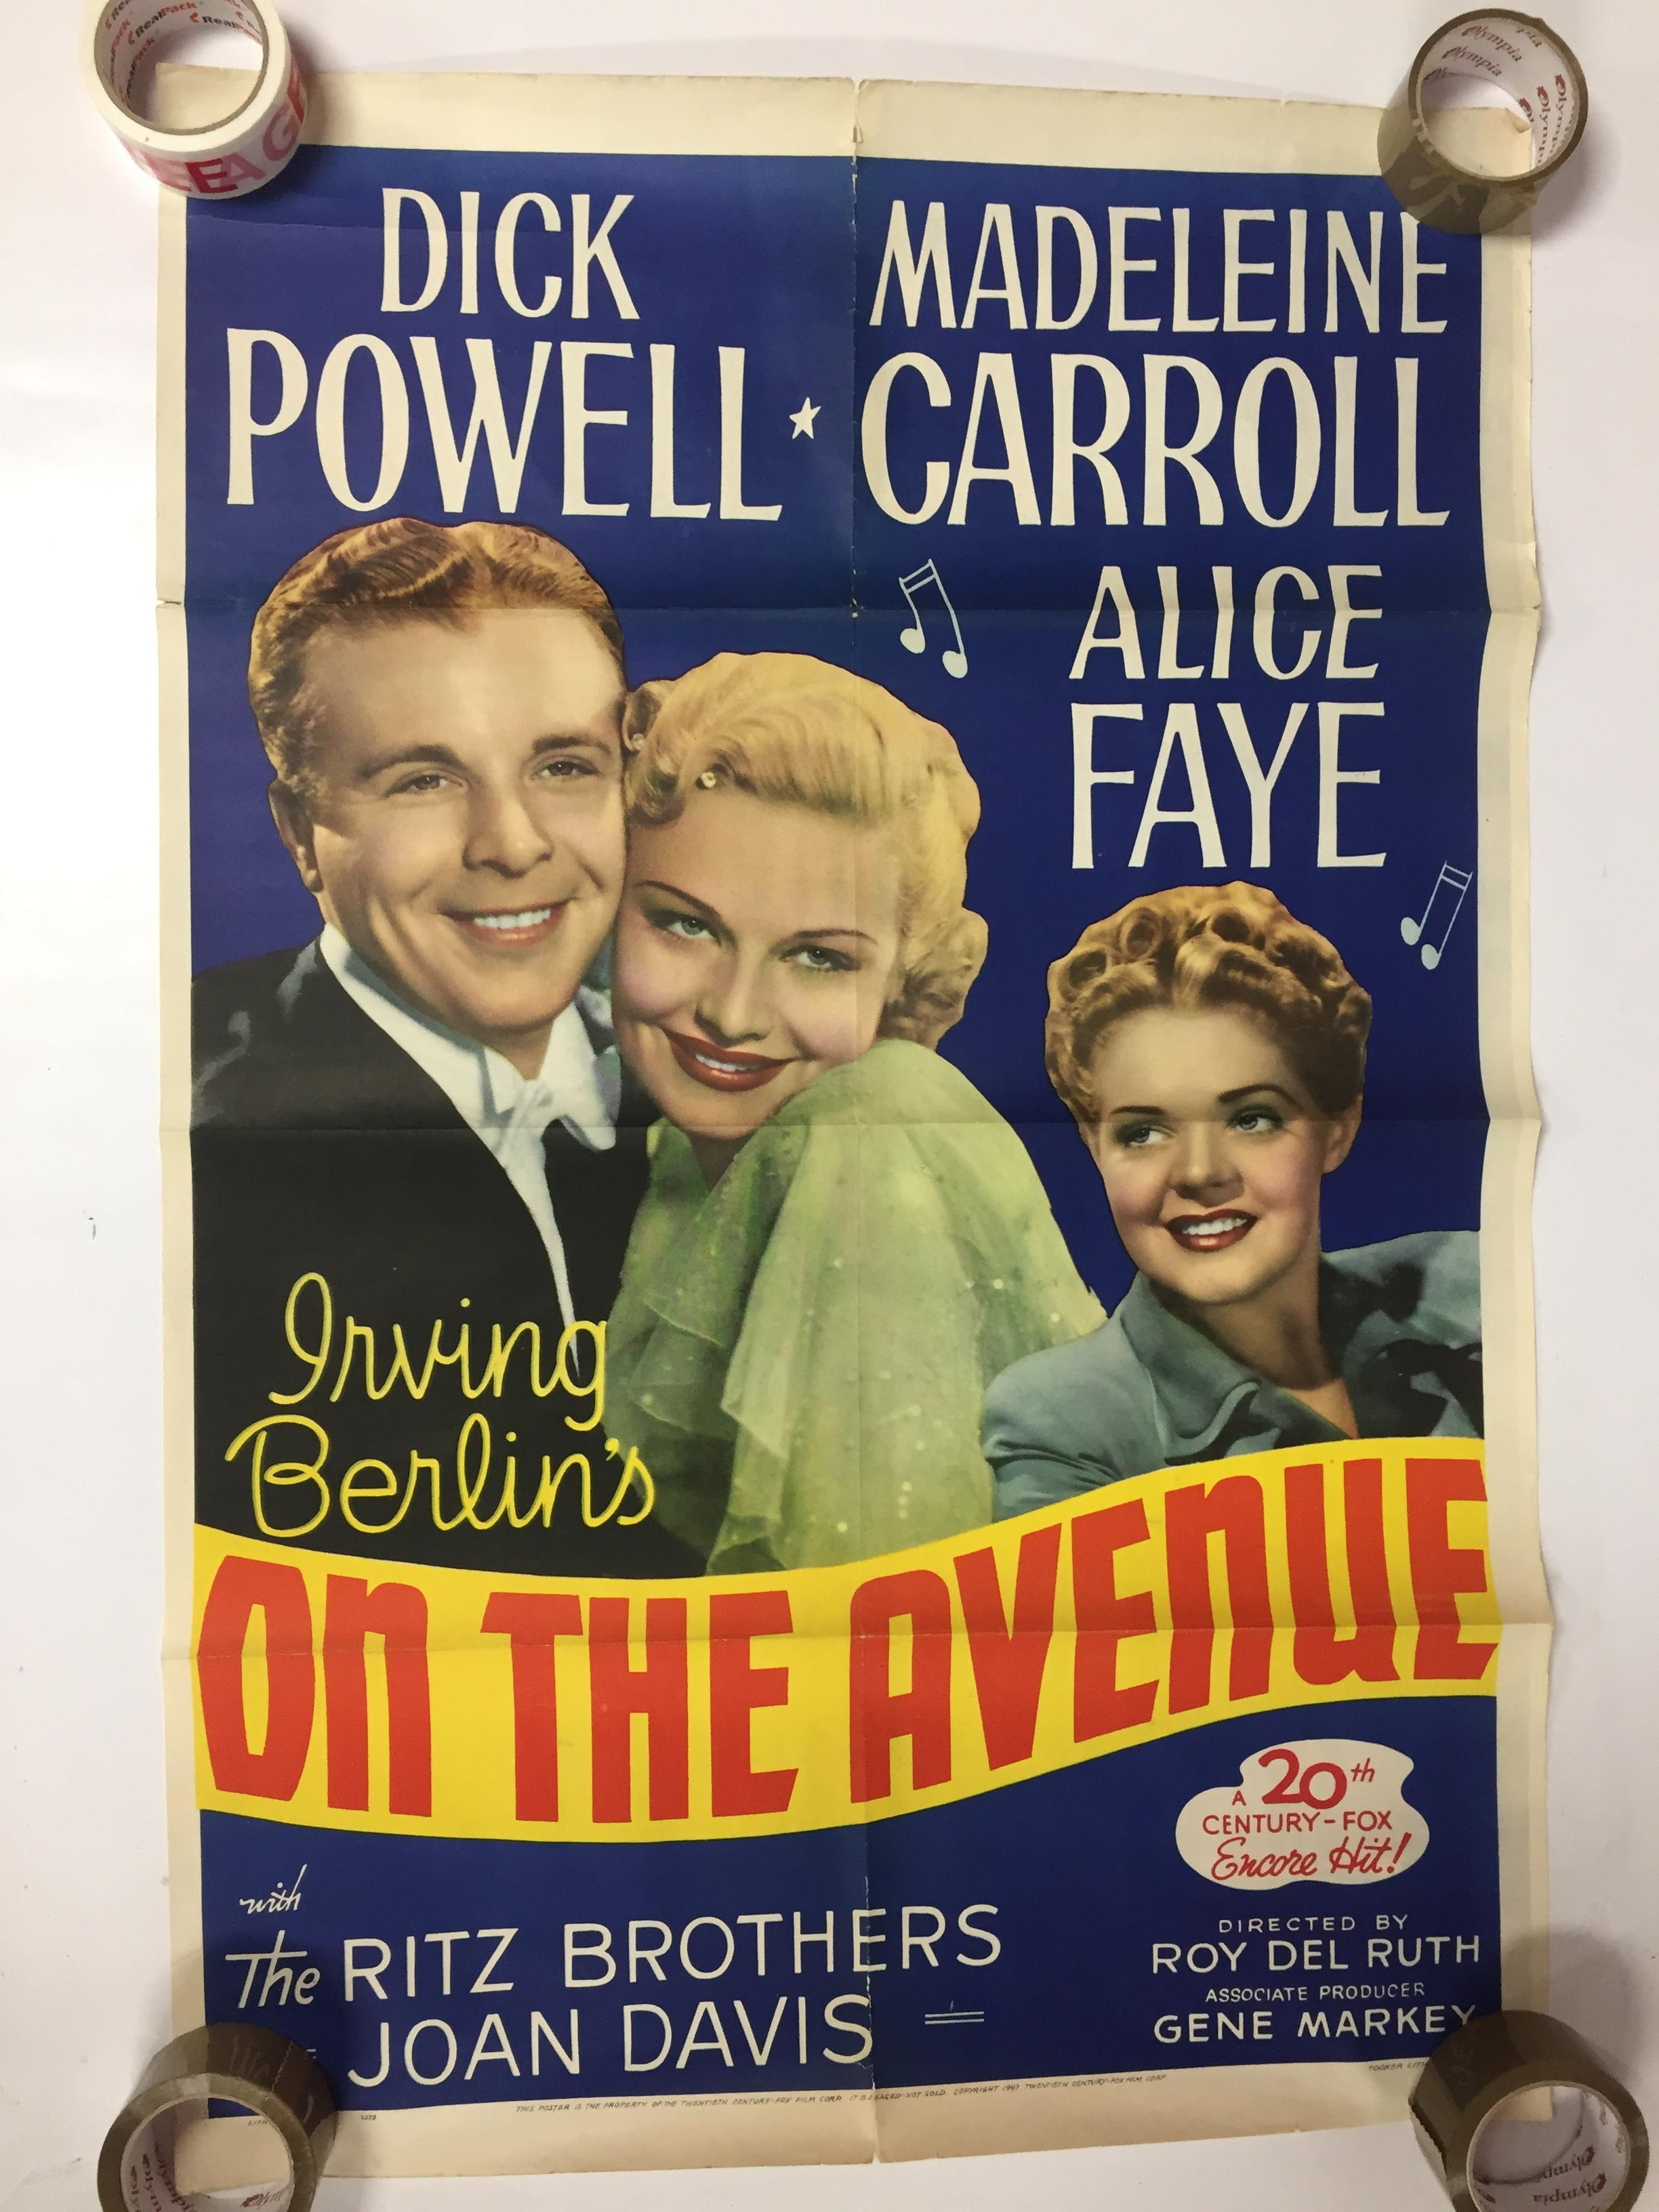 1940S COLOUR FILM POSTER 'ON THE AVENUE' 68 X 102CM (POOR CONDITION)